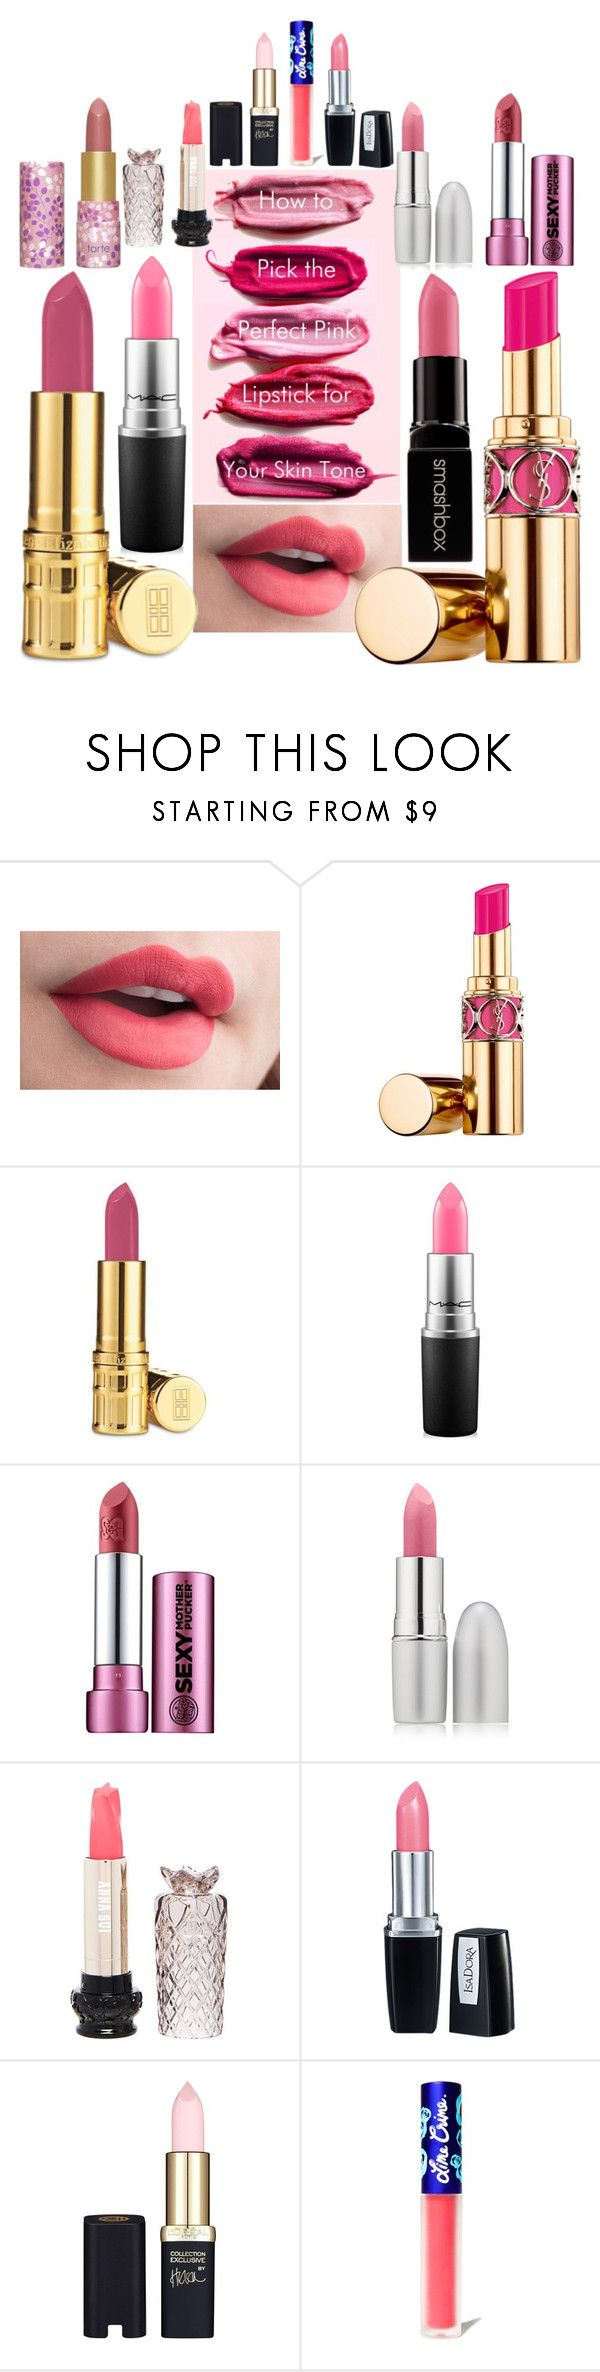 """Pink Lipstick"" by creation-gallery ❤ liked on Polyvore featuring Yves Saint Laurent, Elizabeth Arden, MAC Cosmetics, Smashbox, tarte, TheBalm, Anna Sui, Isadora, L'Oréal Paris and Lime Crime"